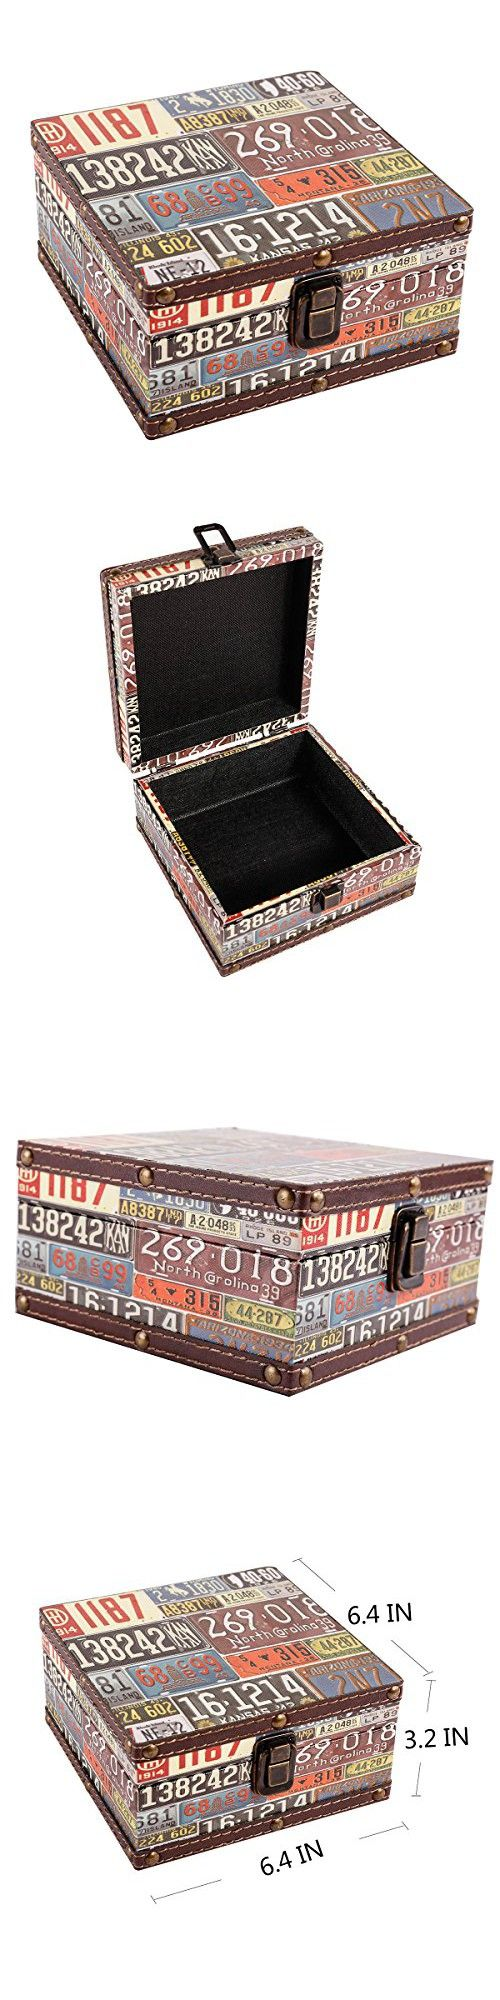 """WaaHome Wooden Treasure Box Vintage Square Treasure Chest Jewelry Keepsakes Storage Boxes For Men Women,Home Decor,License Plate Number Design,6.4""""LX6.4""""WX3.2""""H"""